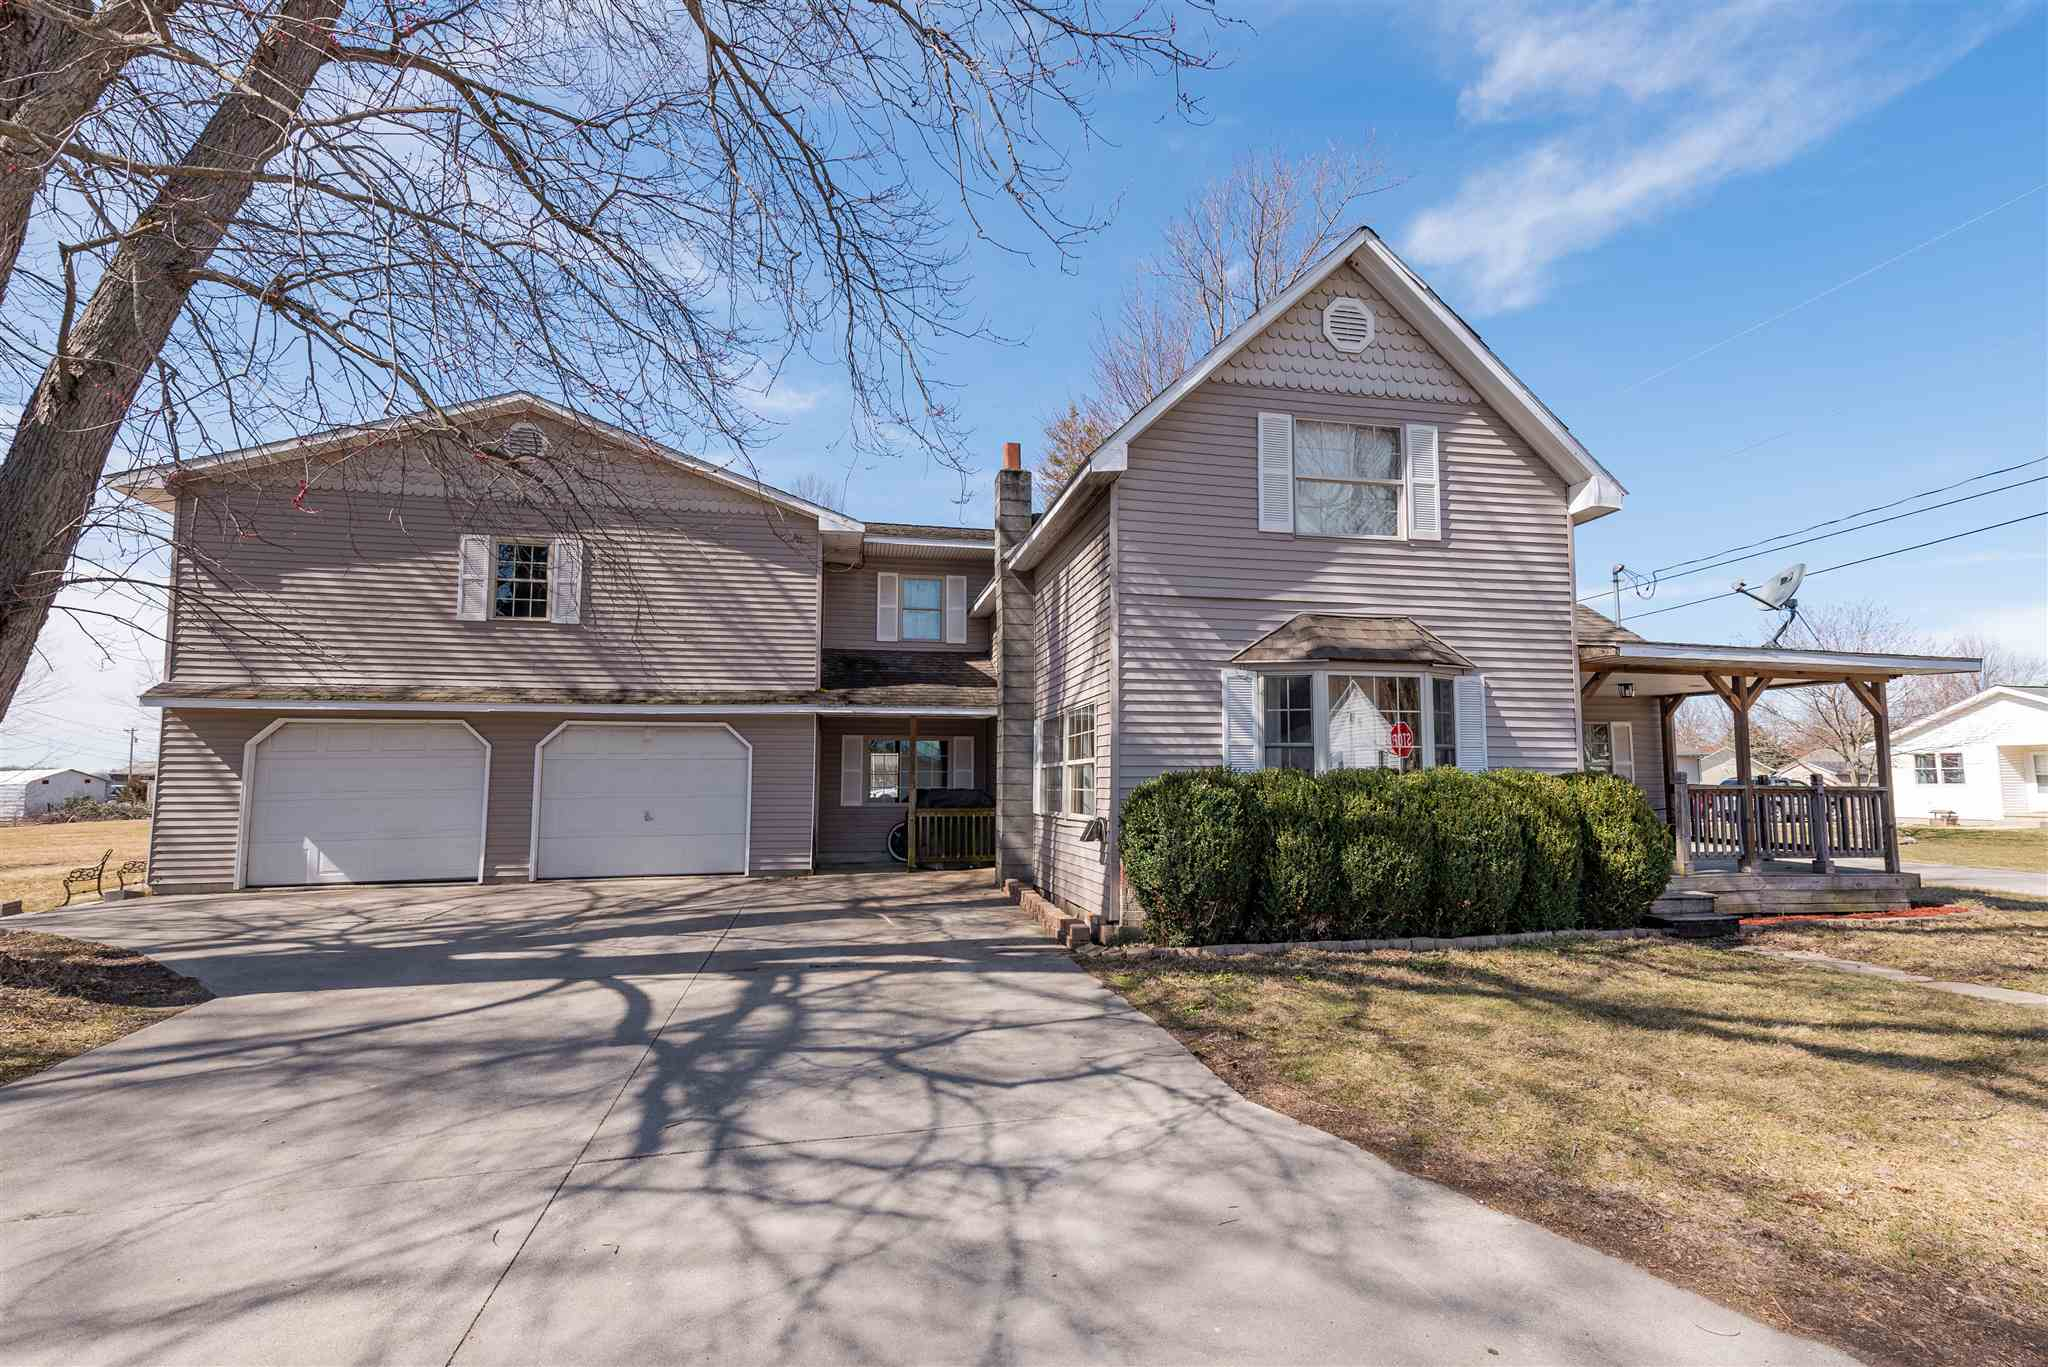 209 N Short Street, South Whitley, IN 46787